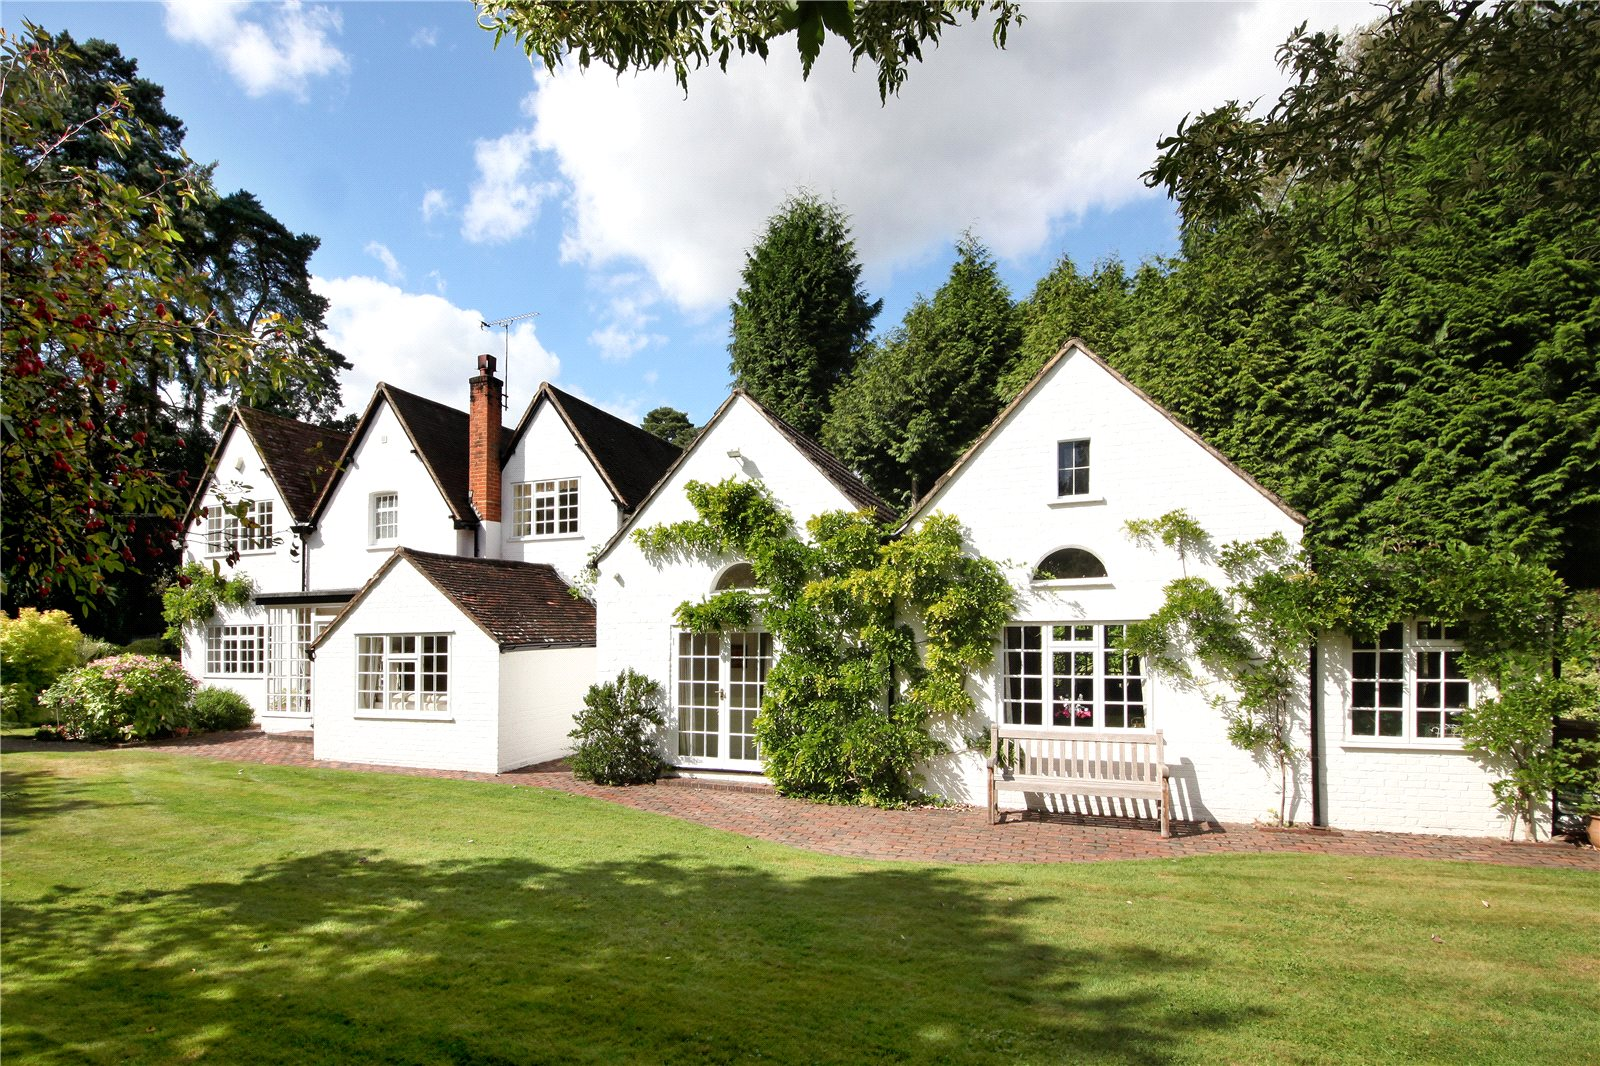 Single Family Home for Sale at Westwood Road, Windlesham, Surrey, GU20 Windlesham, England